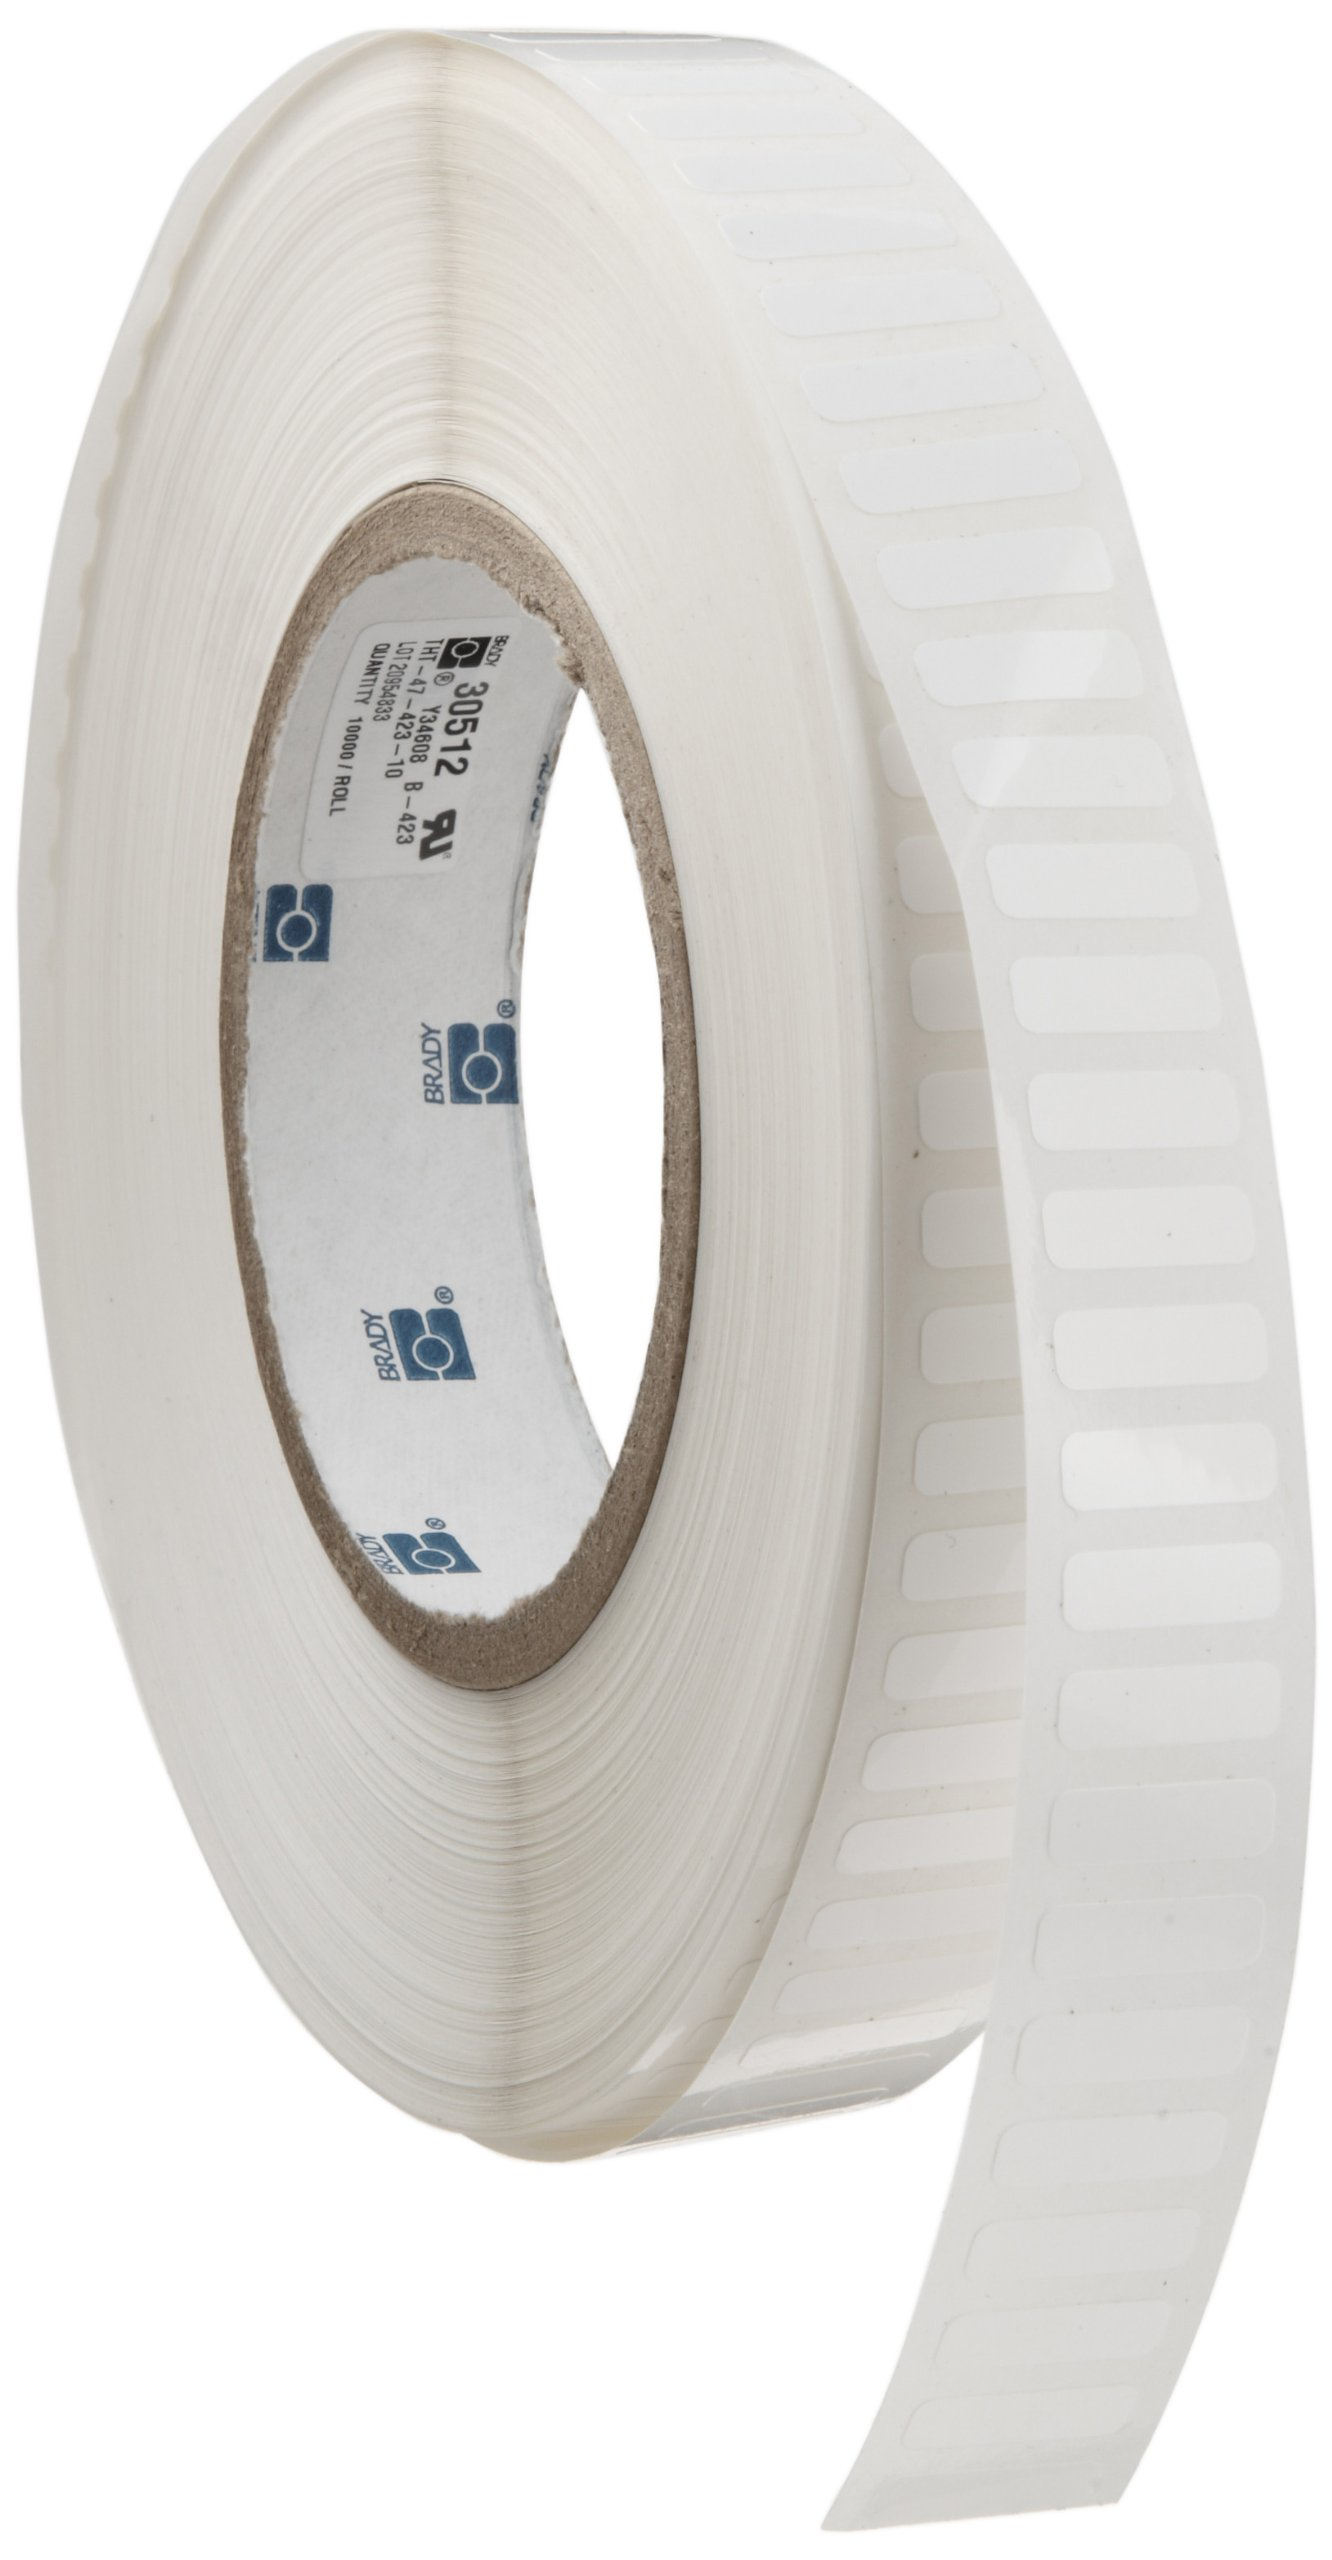 Brady THT-47-423-10 0.65'' Width x 0.2'' Height, B-423 Permanent Polyester, Gloss Finish White Thermal Transfer Printable Label (10000 per Roll) by Brady